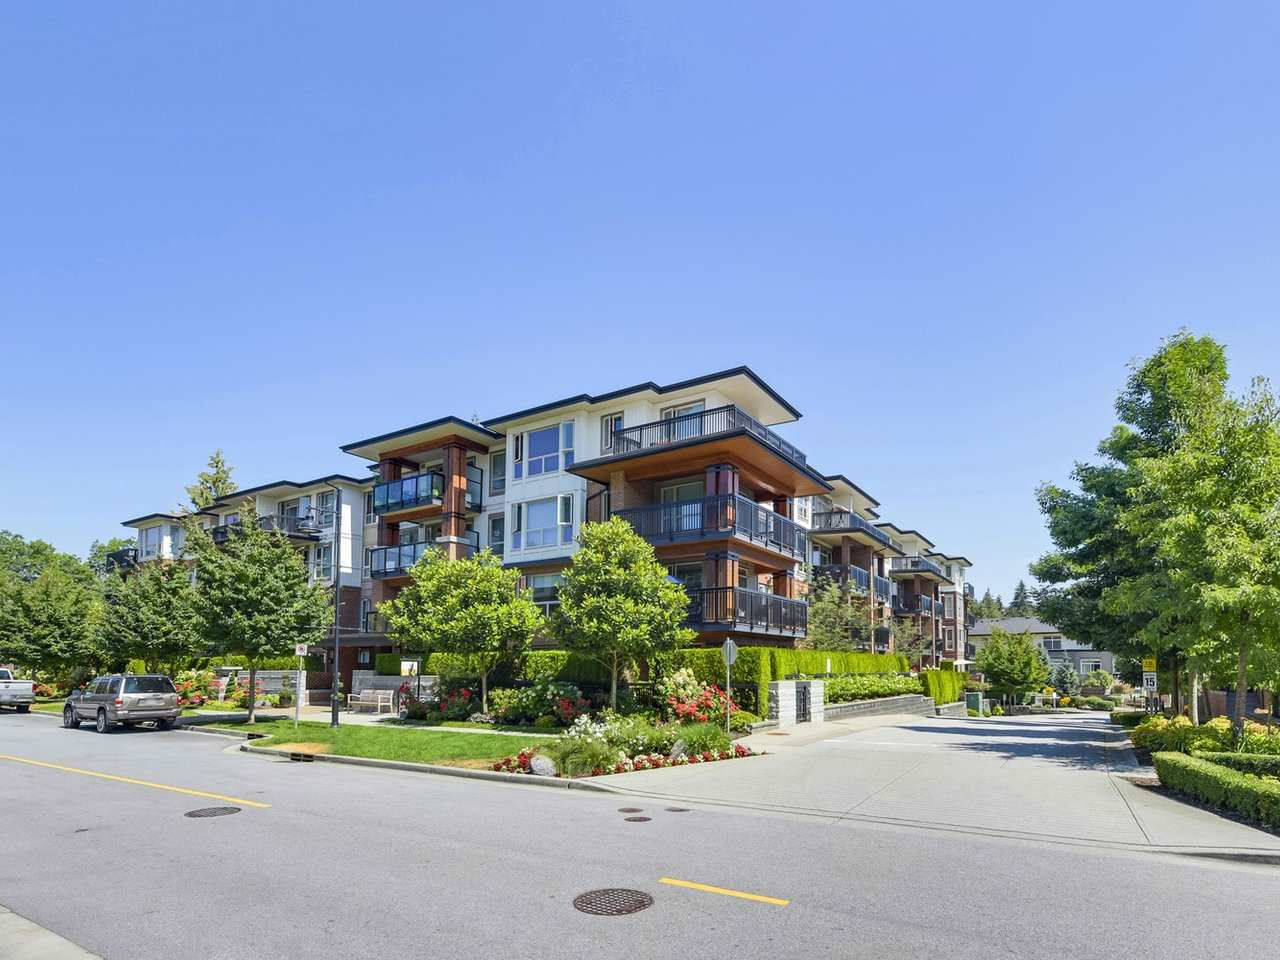 Main Photo: 413 1153 KENSAL Place in Coquitlam: New Horizons Condo for sale : MLS®# R2325575